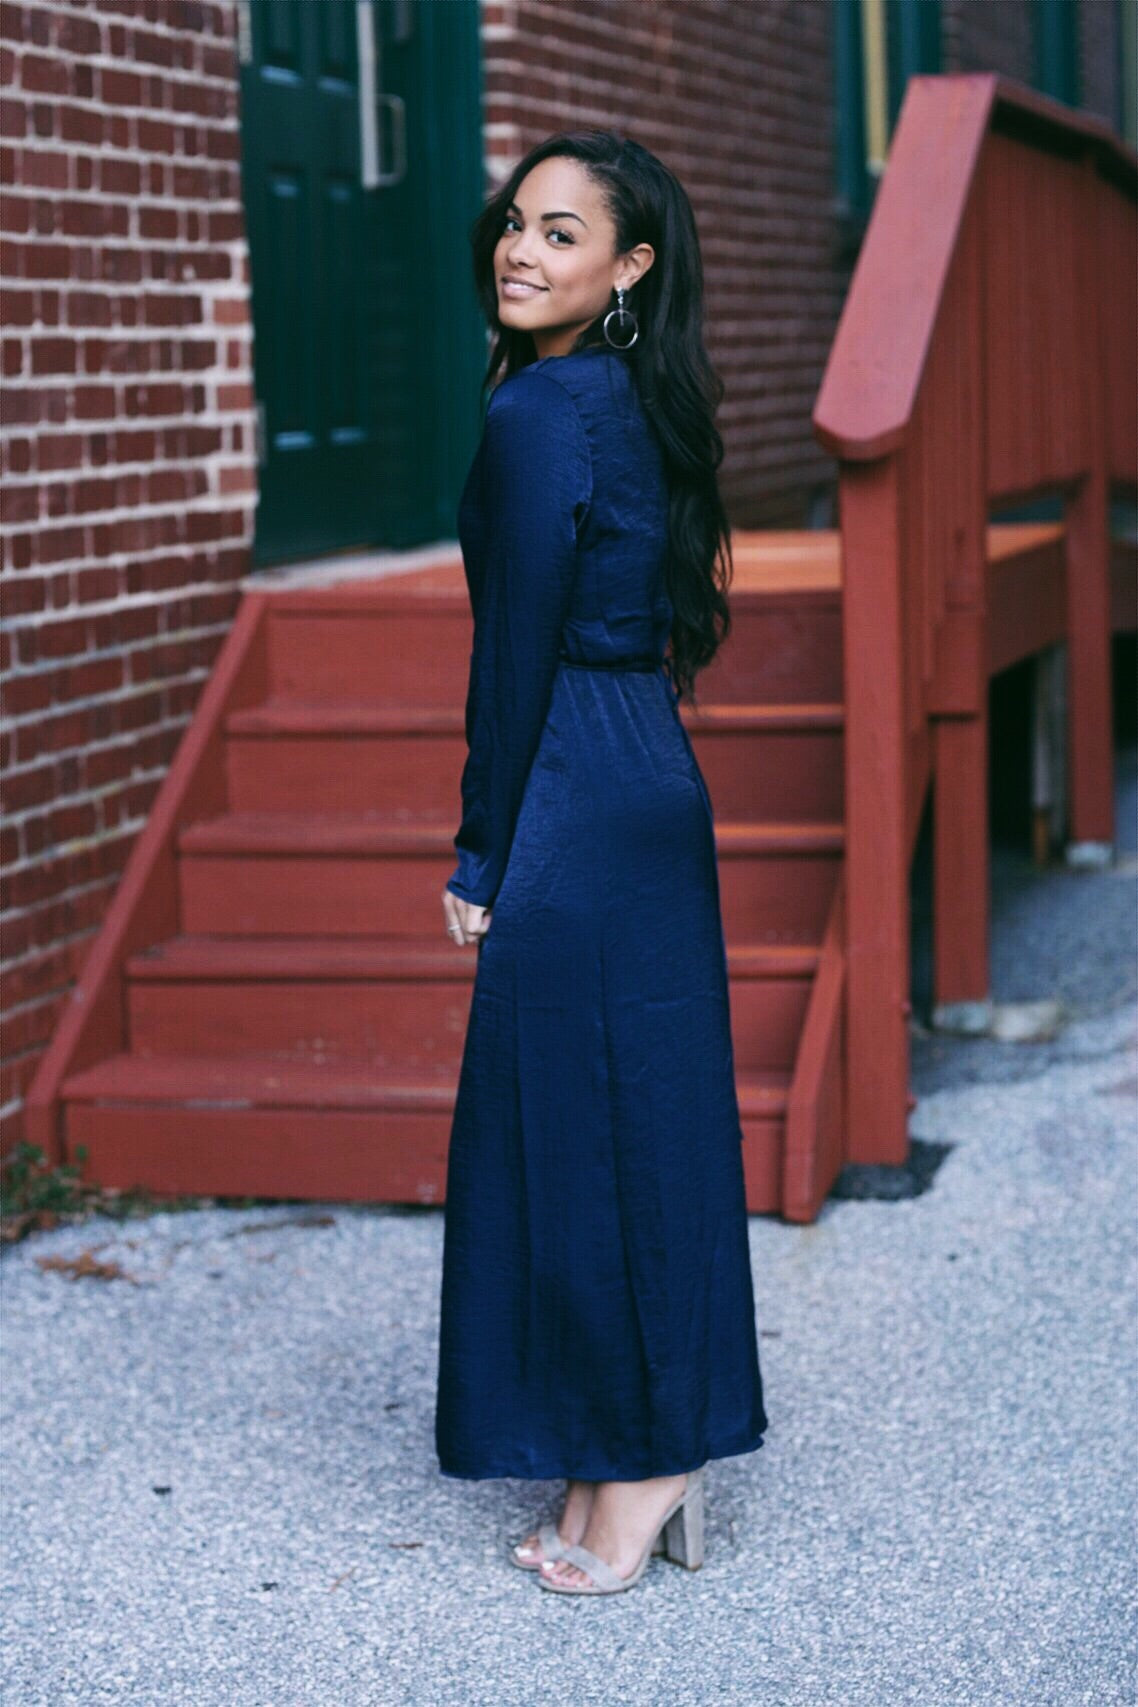 Jordi Navy Wrap Dress